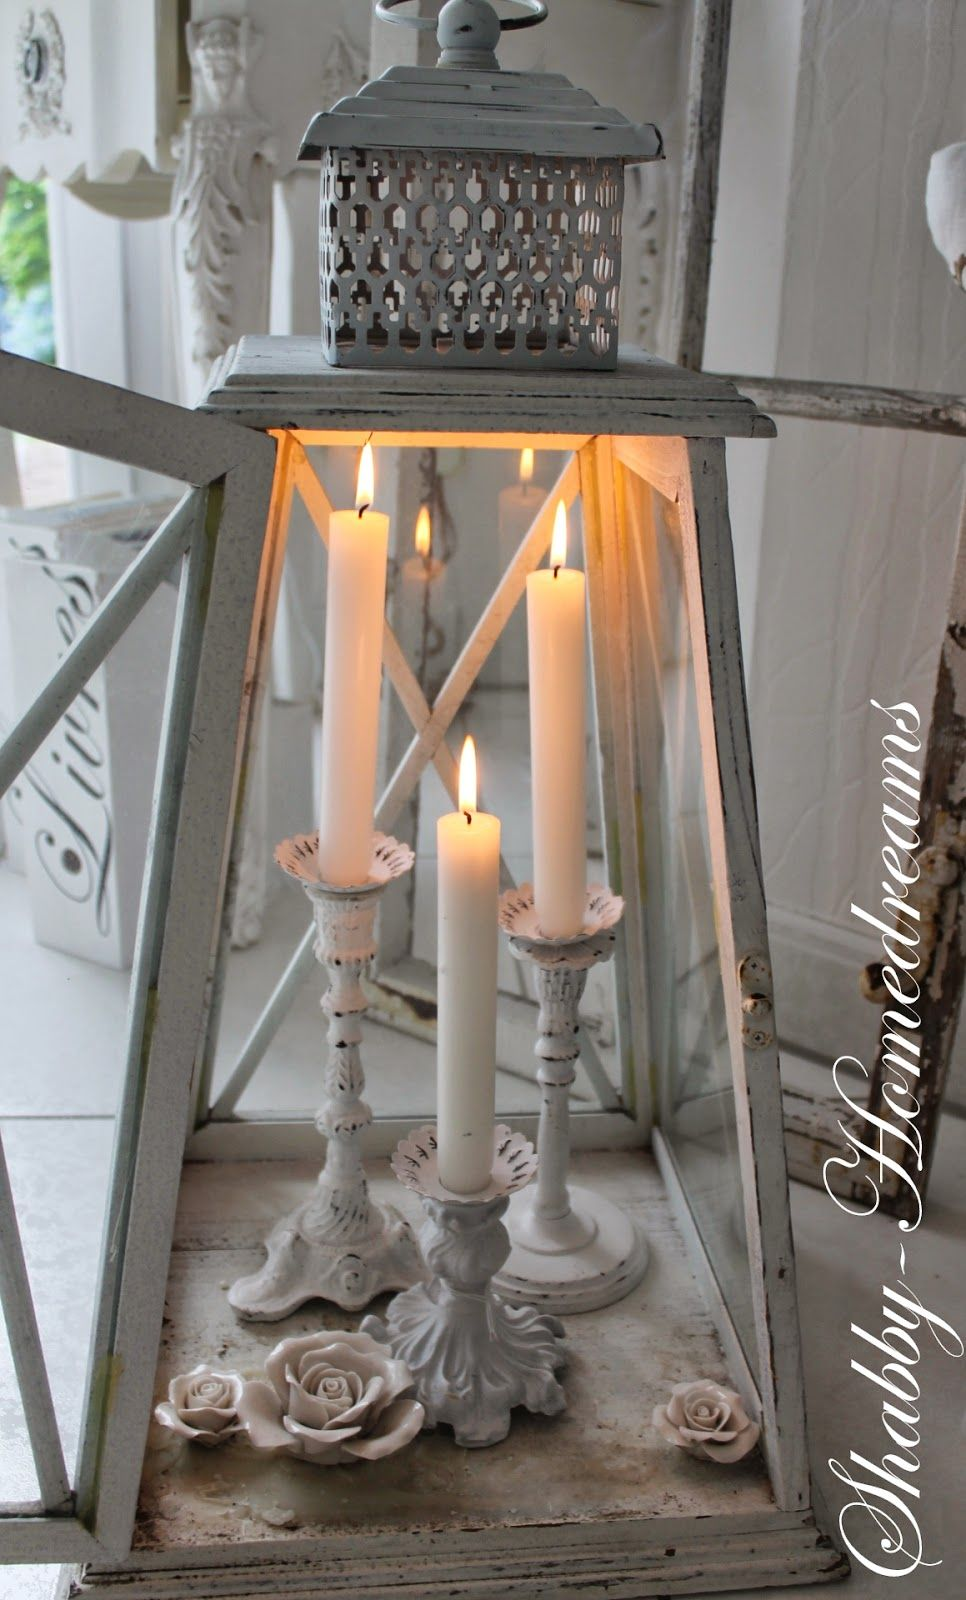 Kerzen Deko Ideen Place Candles In A Lantern A Great Way To Decorate With Candles